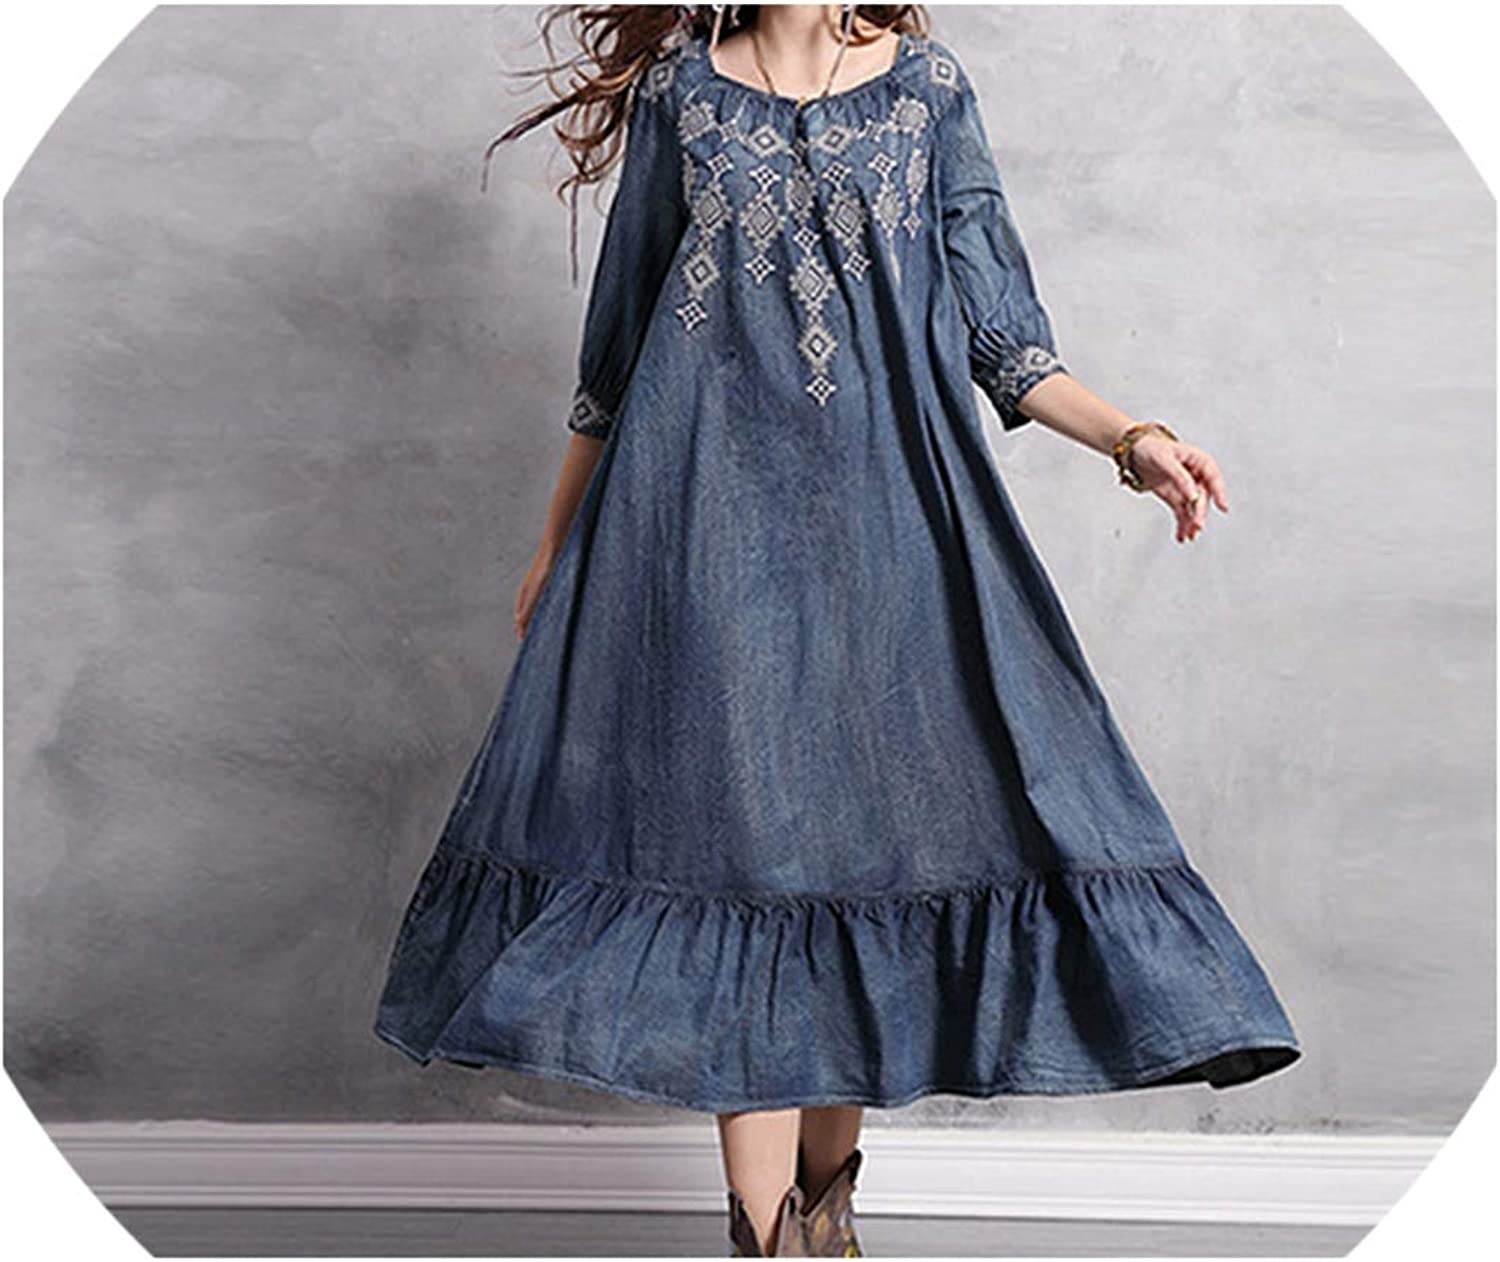 Denim Loose Dress for Women Summer Half Sleeve Ruffles Embroidery Vintage Maxi Dress Party Casual